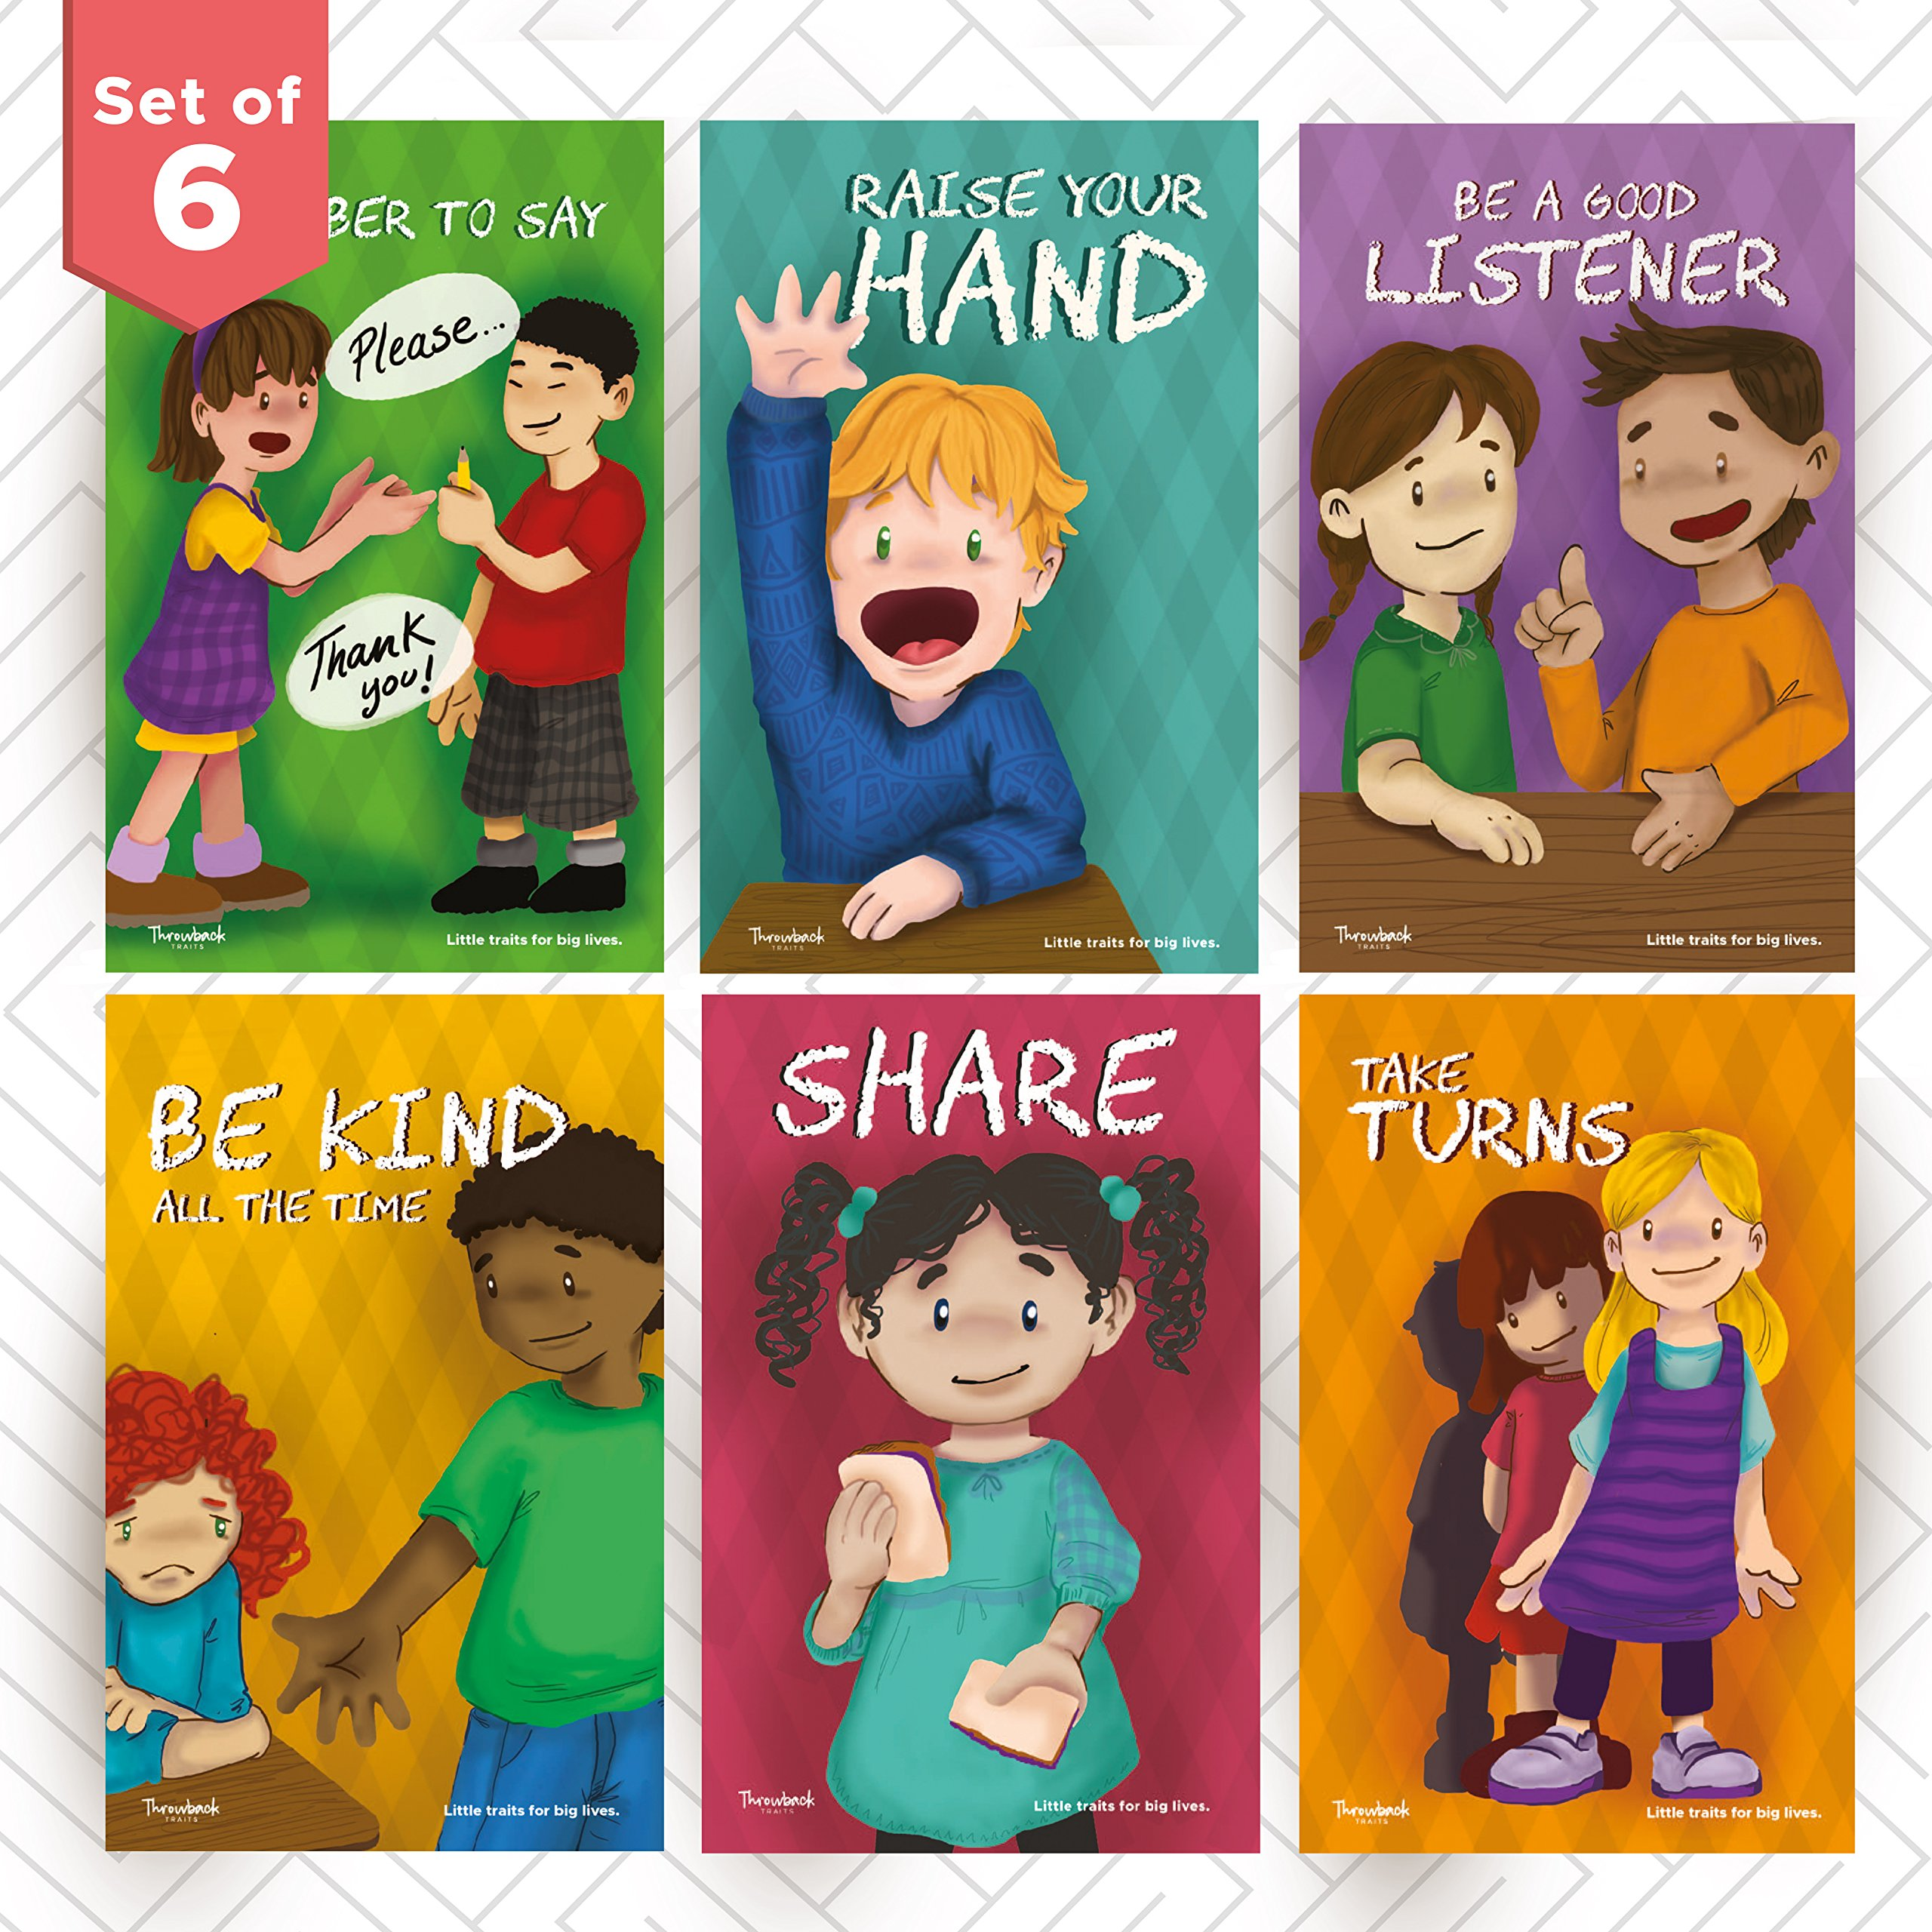 Throwback Traits Six Educational Preschool - Daycare Posters for Toddlers and Kids in Kindergarten. Great for Children's School Classrooms. Teaching our Children Values is Important.